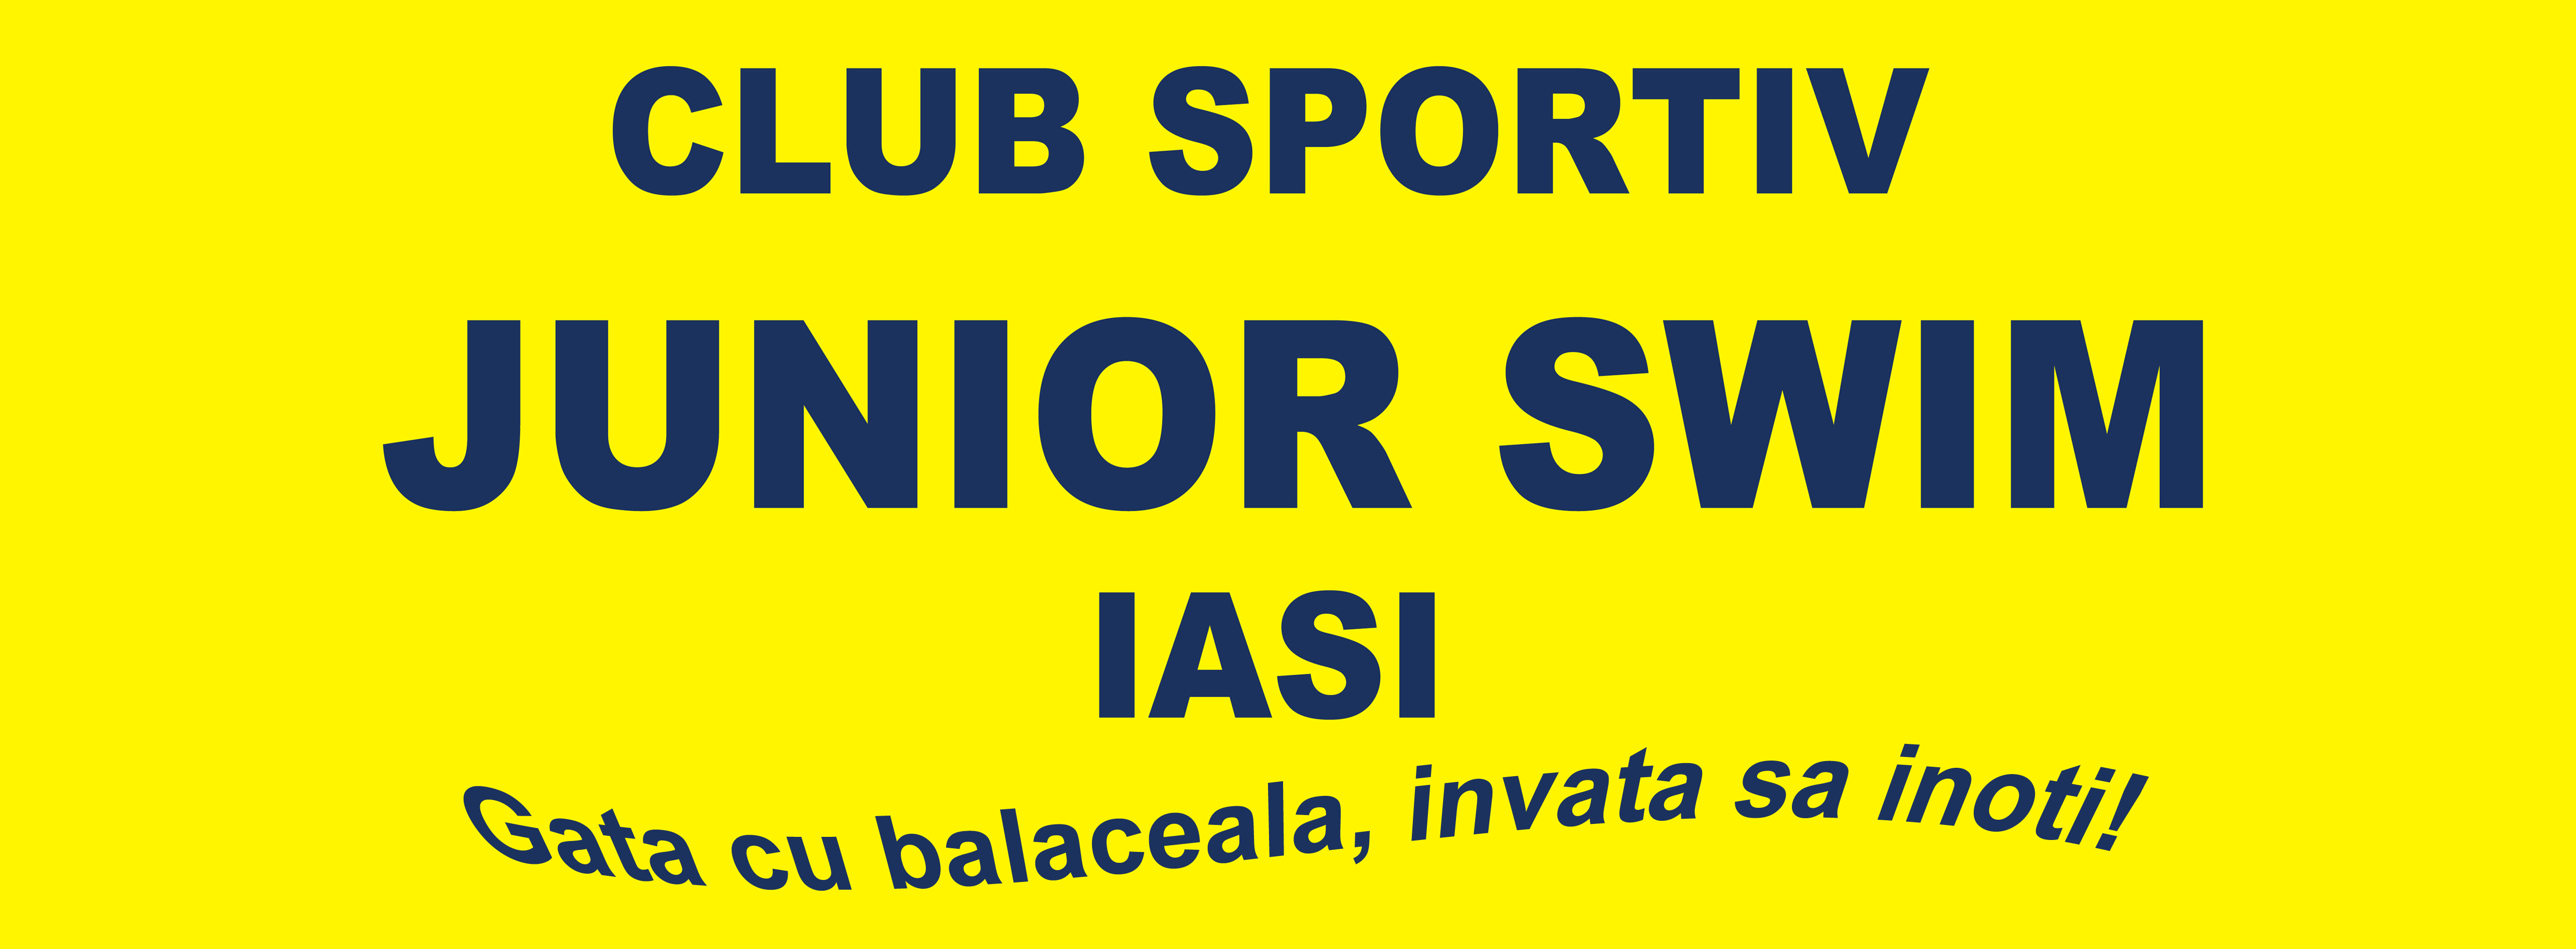 Junior Swim Iasi